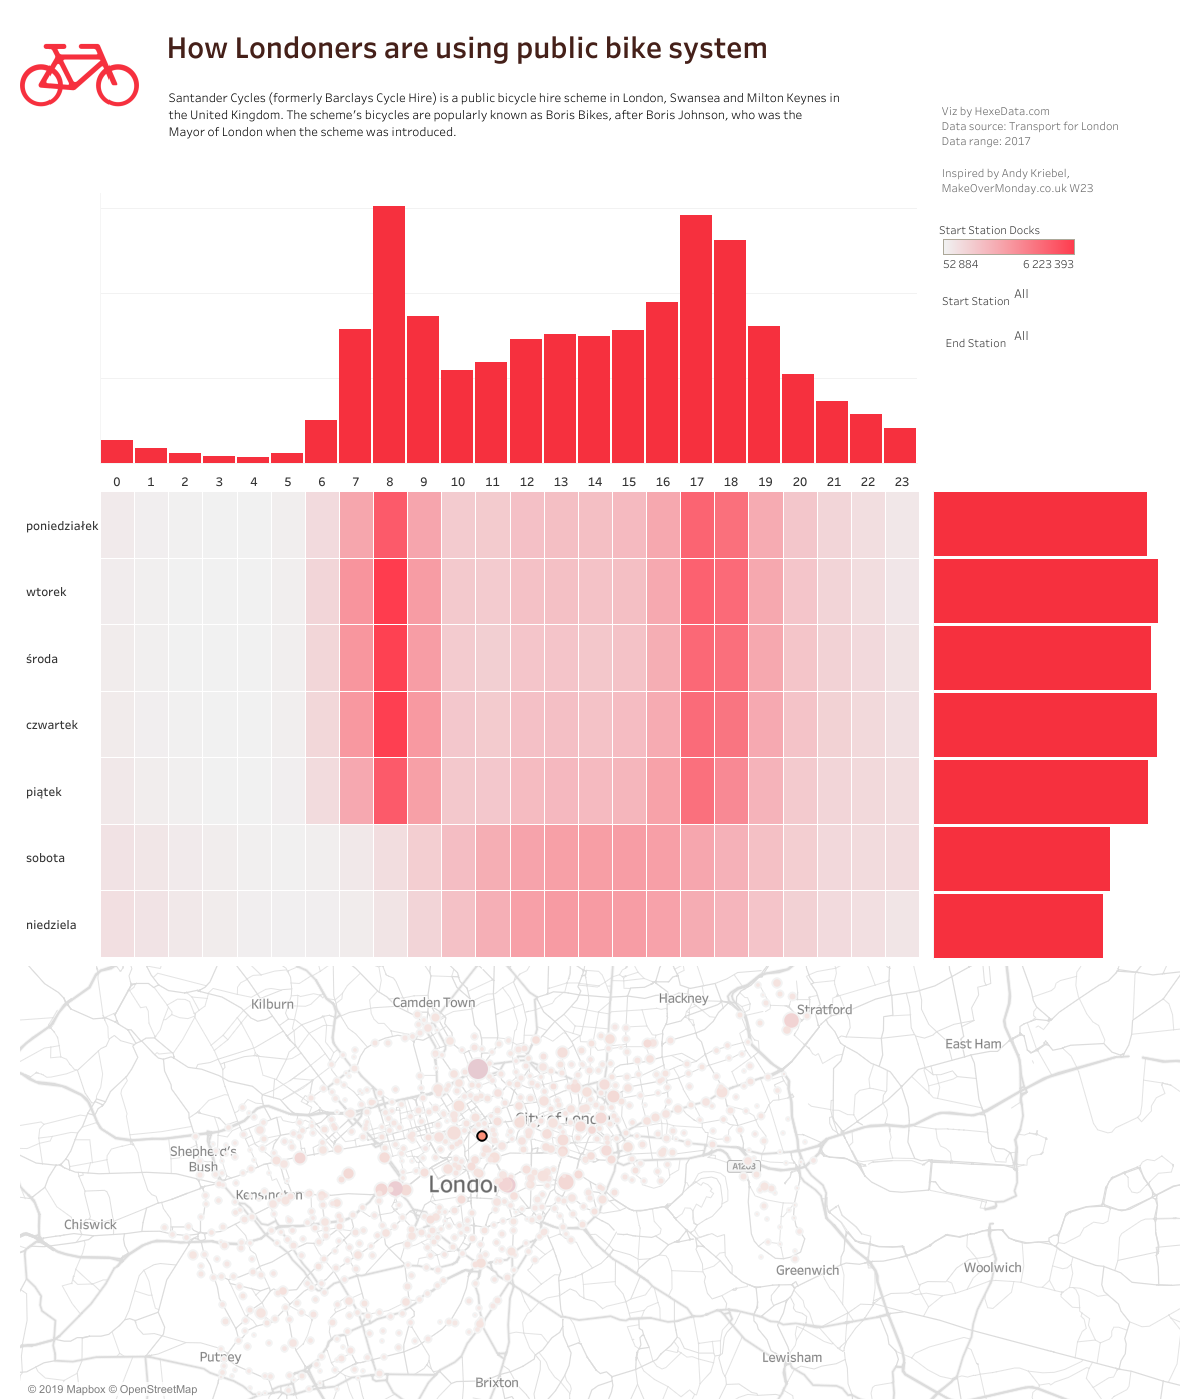 How Londoners Are Using Public Bike System Data Visualization